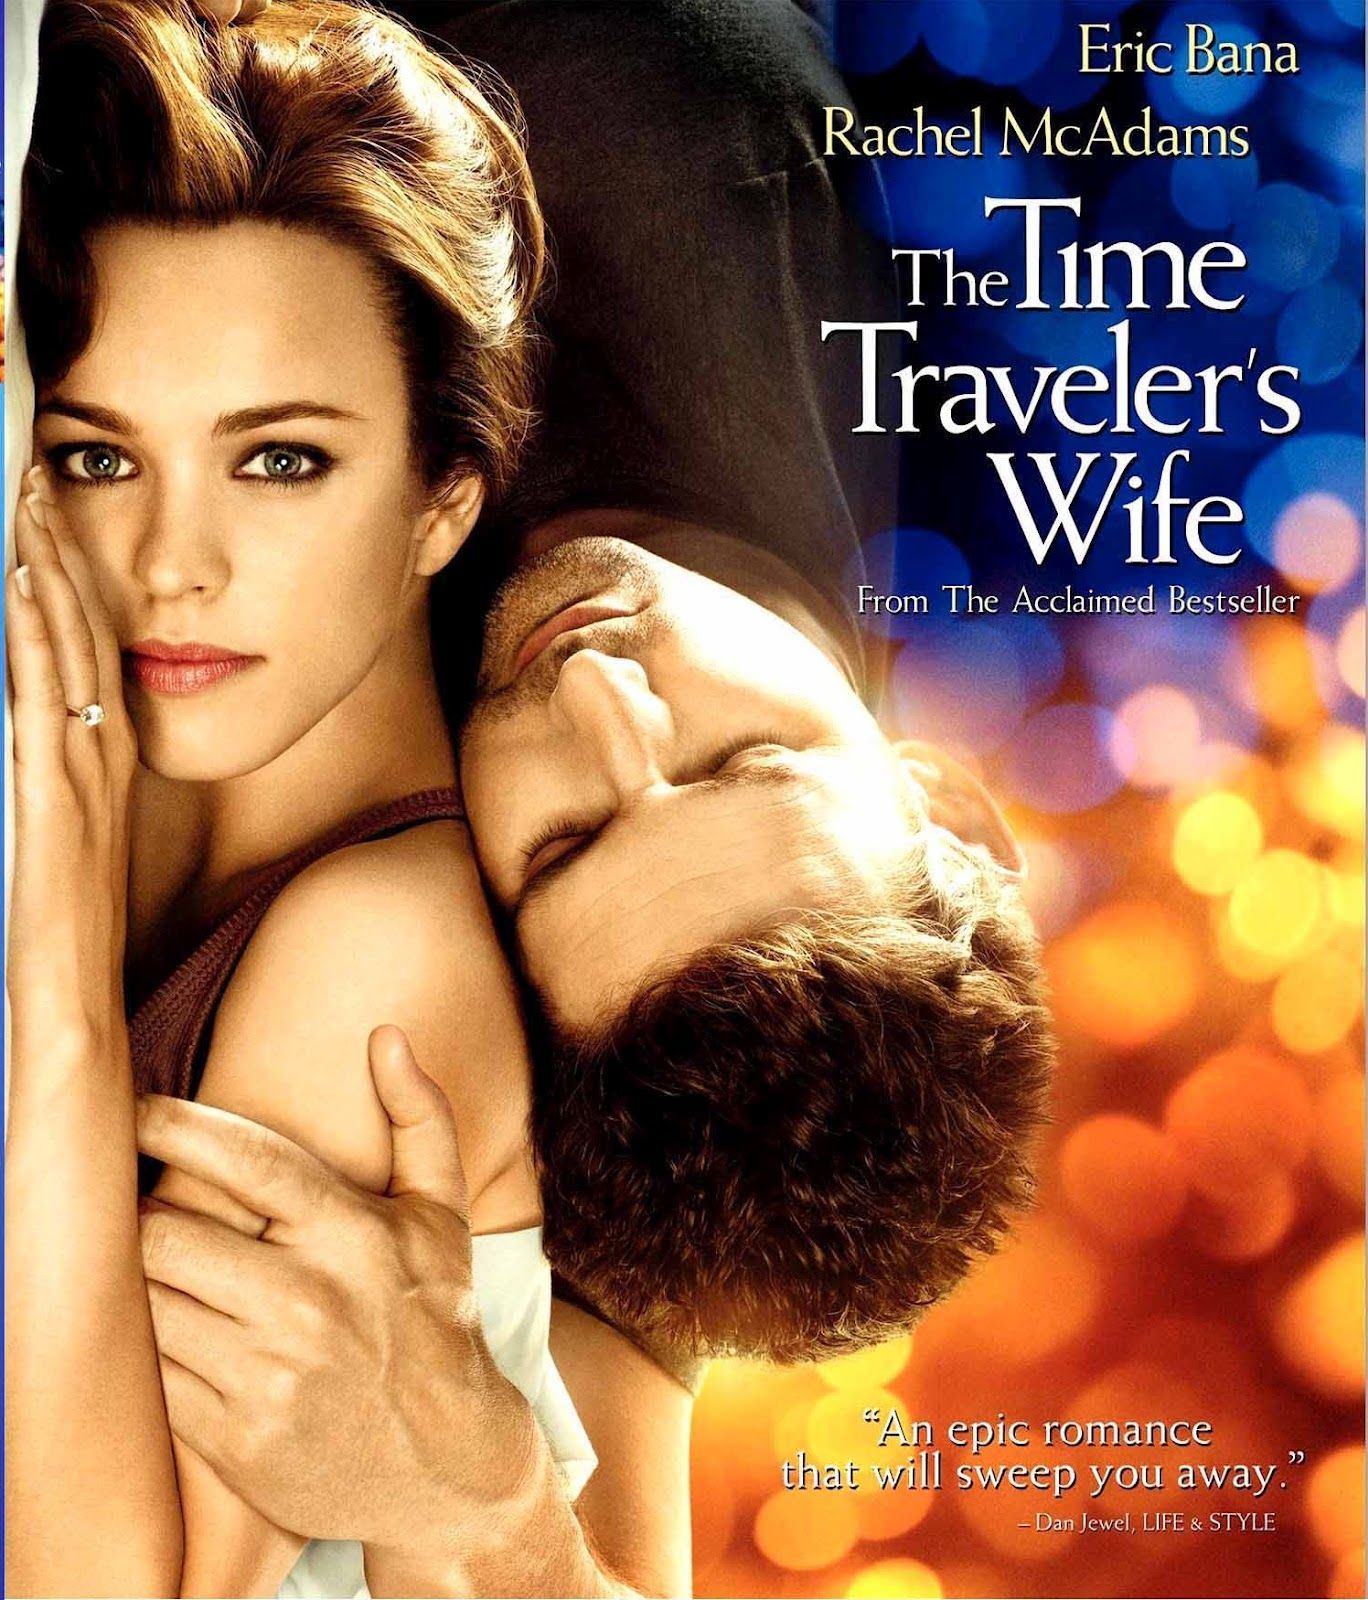 The Time Travelers Wife with Rachel McAdams and Eric Bana